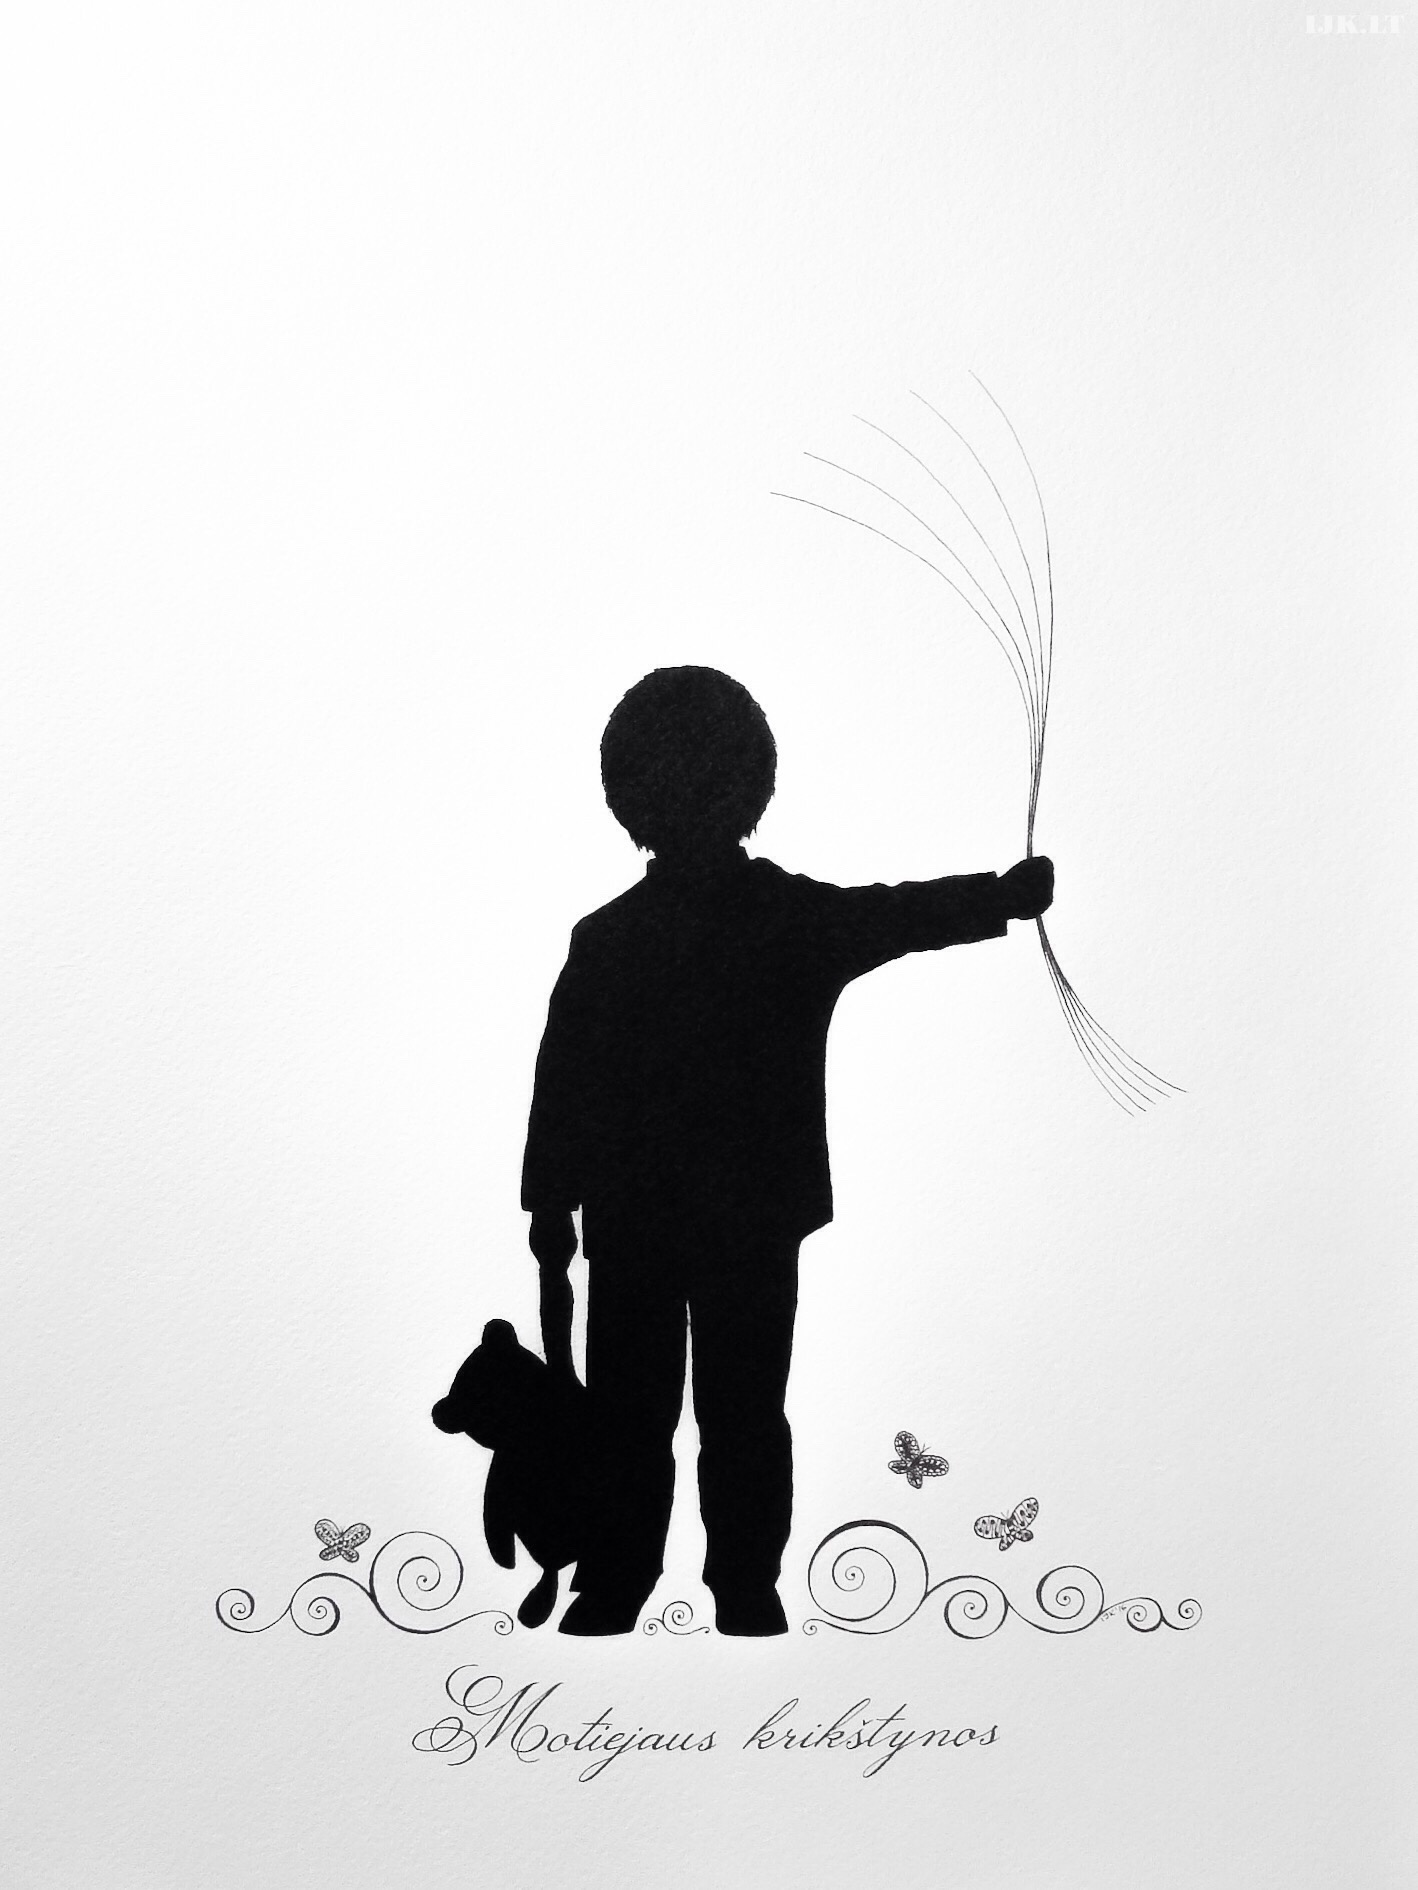 Picture for guests fingerprints and wishes, little boy with balloons, baptism, birthday